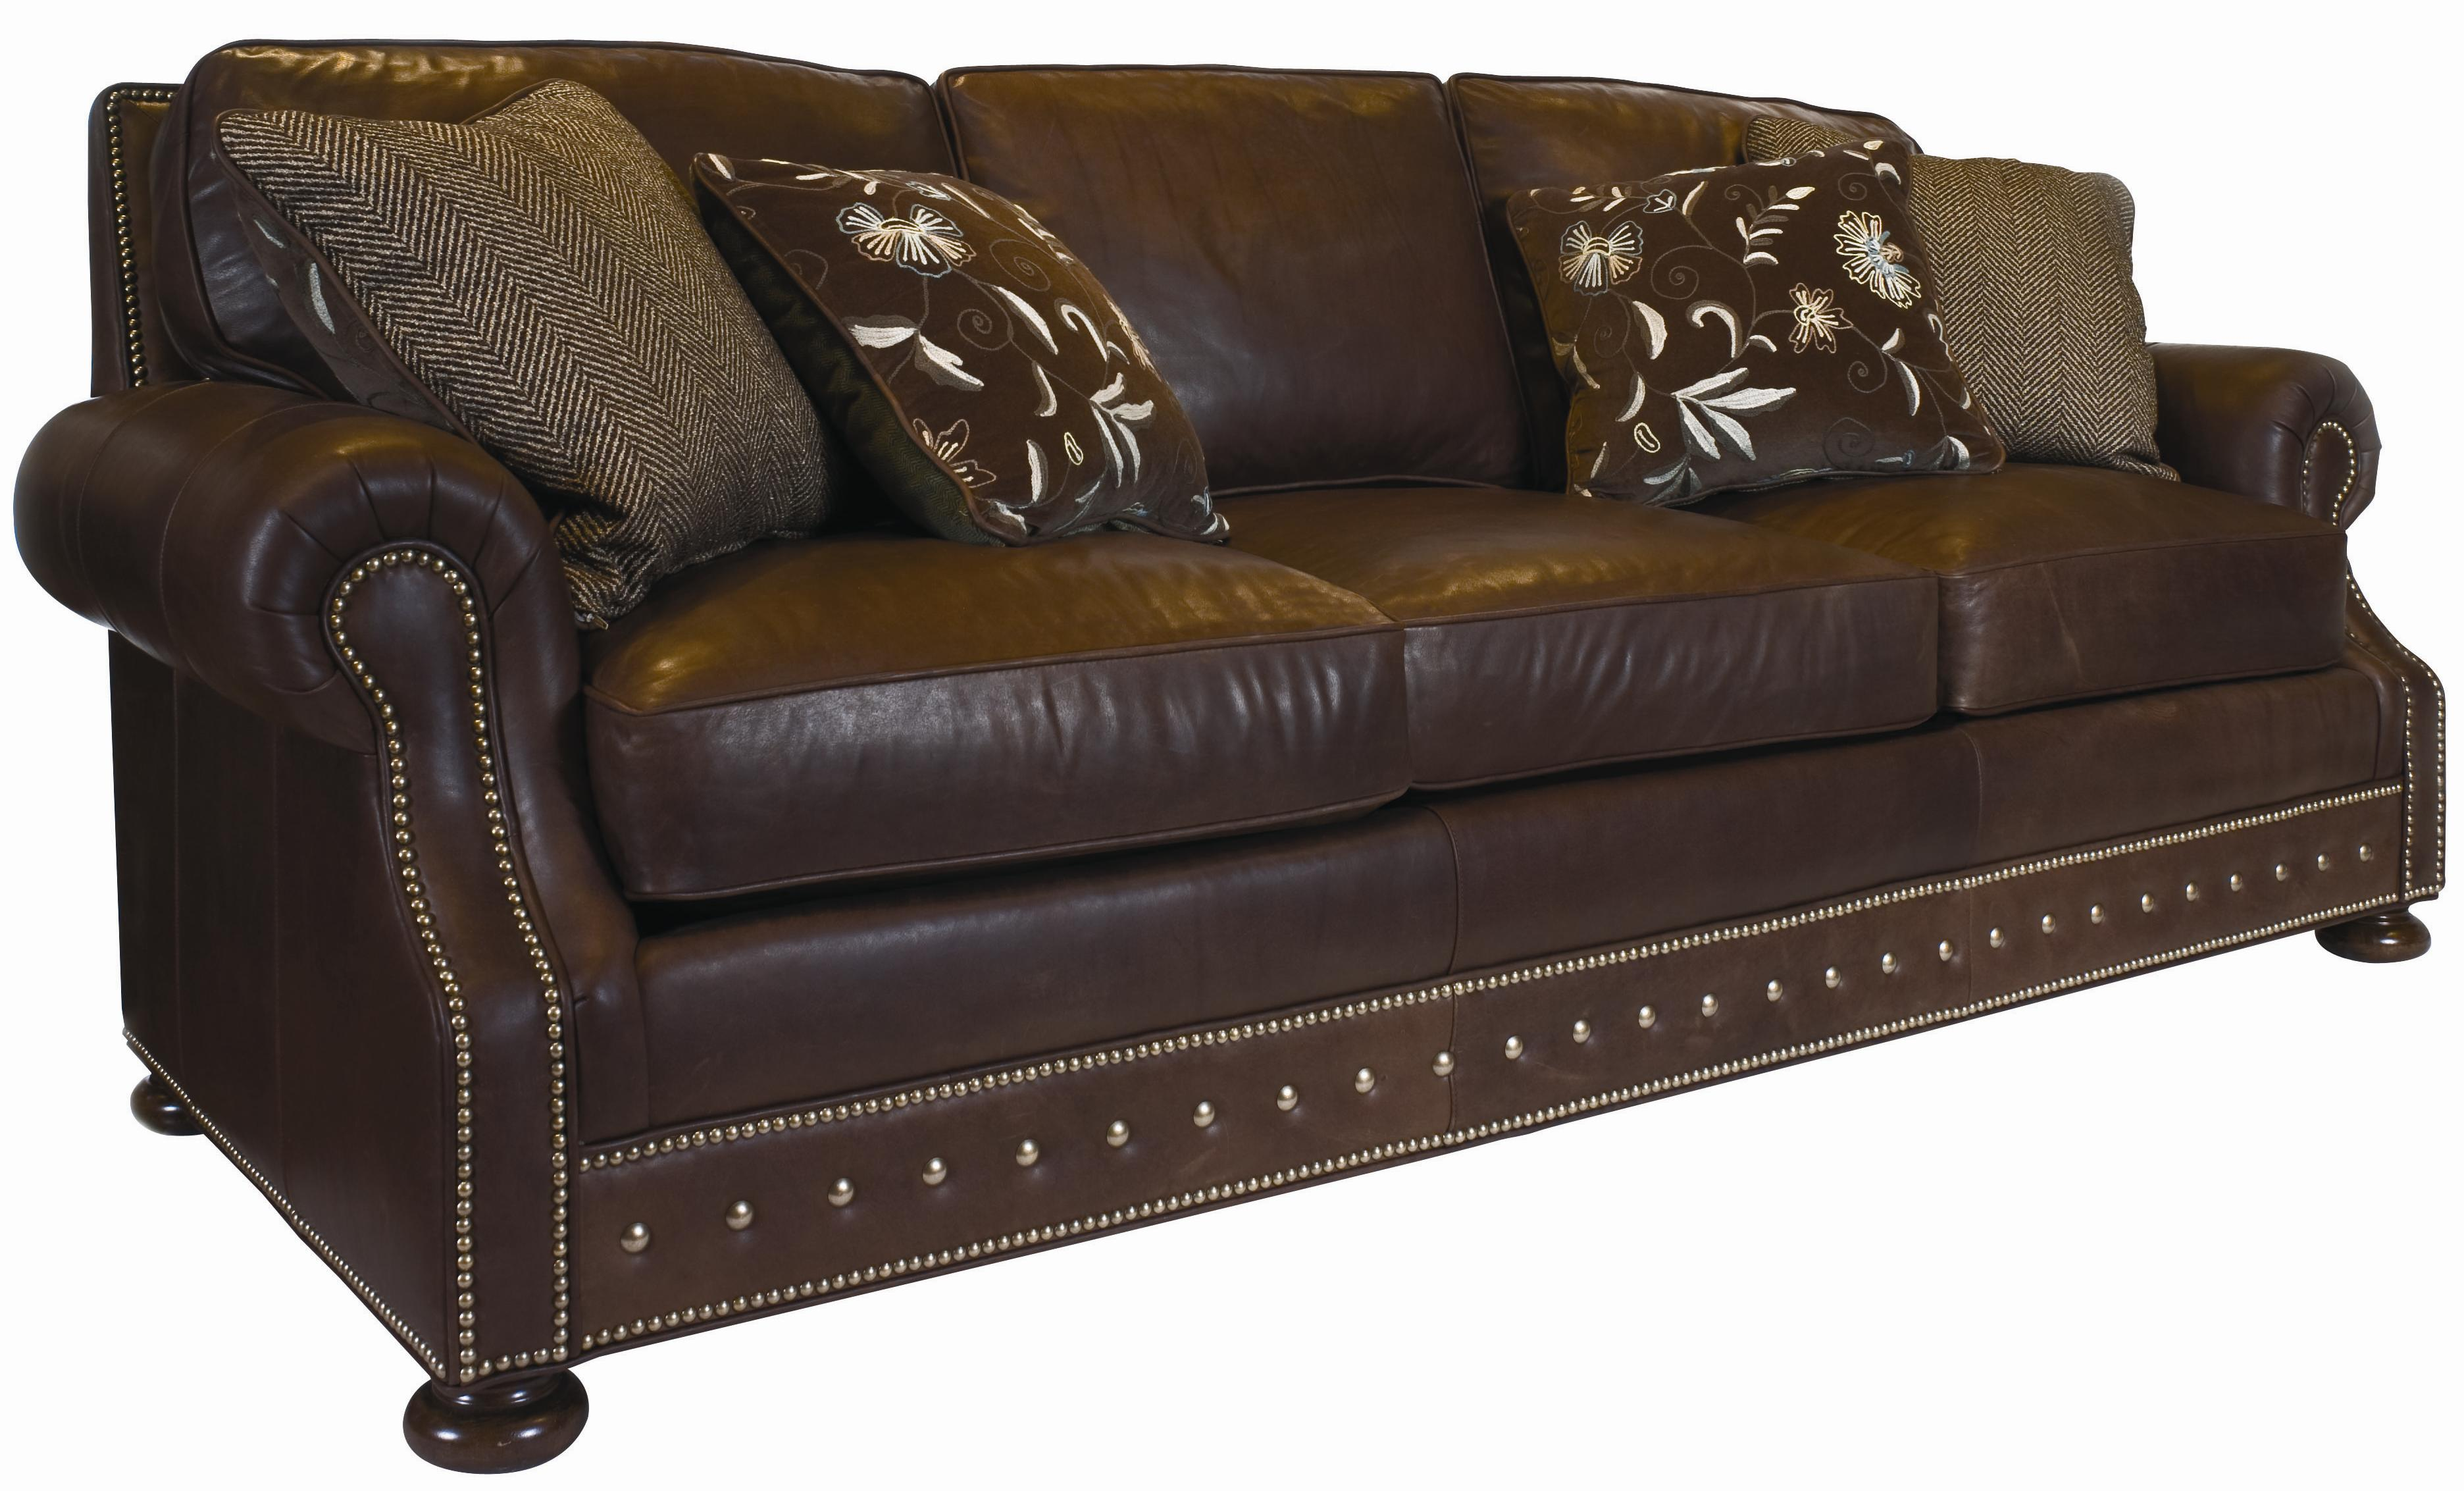 Kingstown Devon Sofa by Tommy Bahama Home at Baer's Furniture